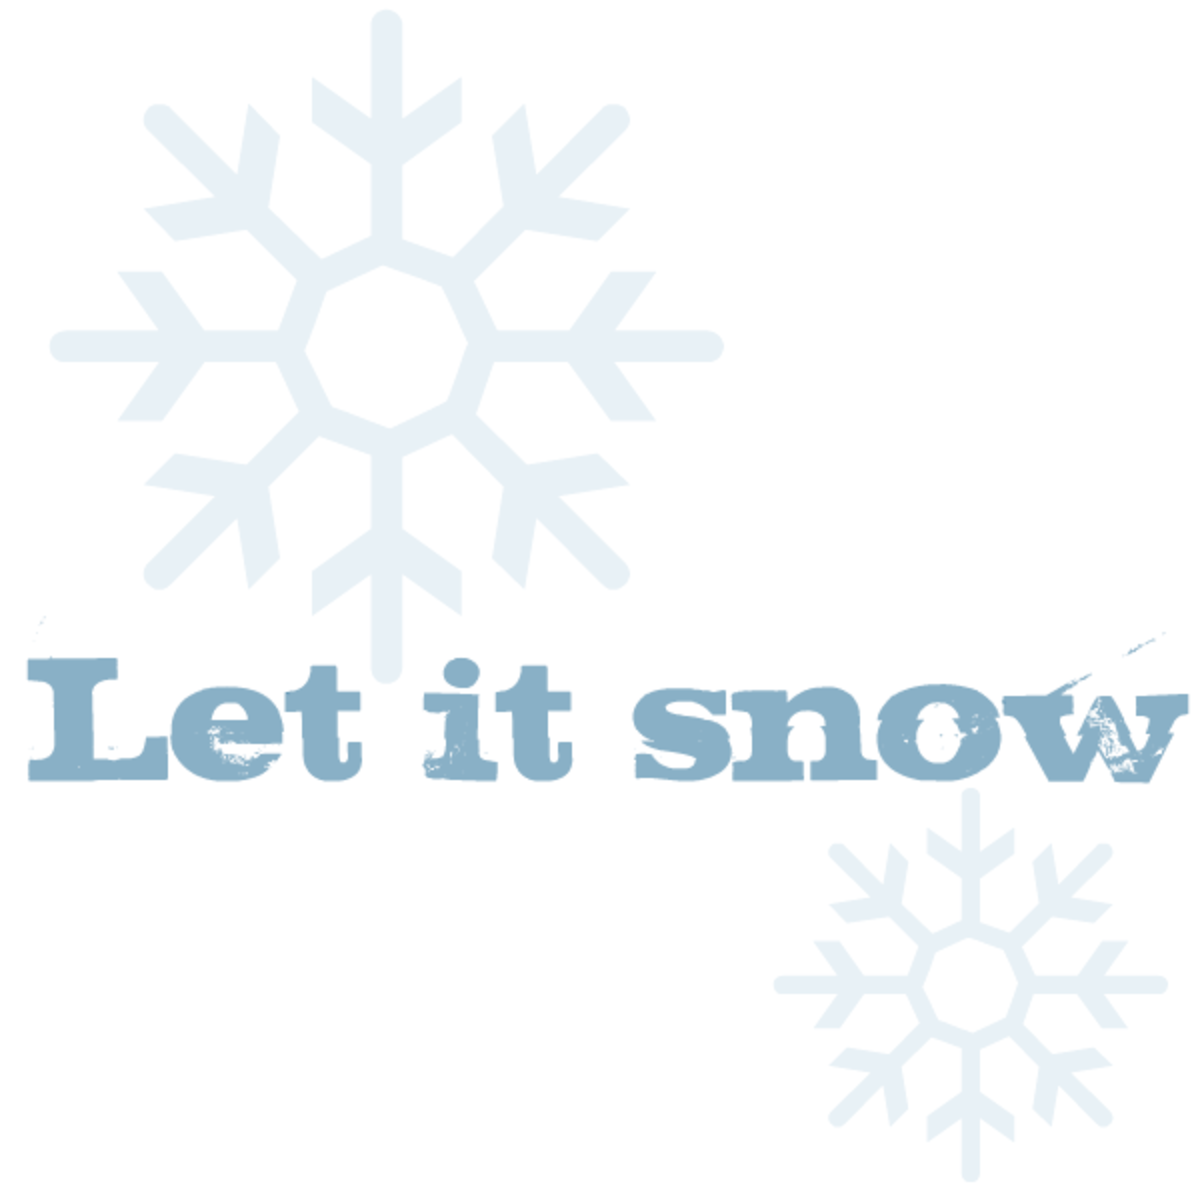 Winter clip art: Let it snow with two snowflakes